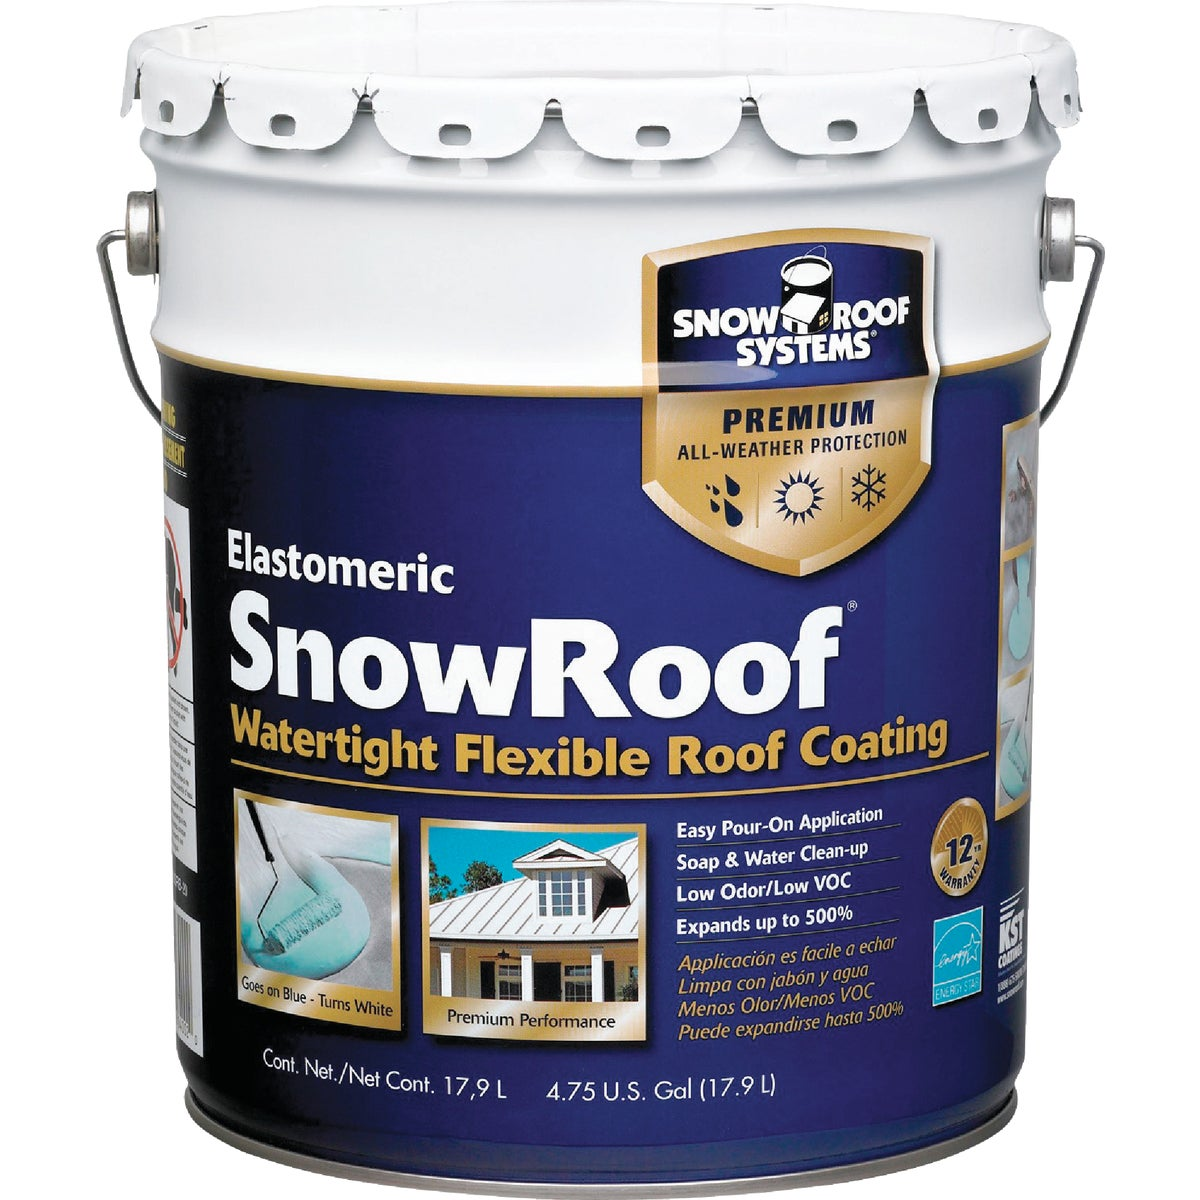 5GAL SNOW ROOF COATING - KST000SRB-20 by Snow Roof